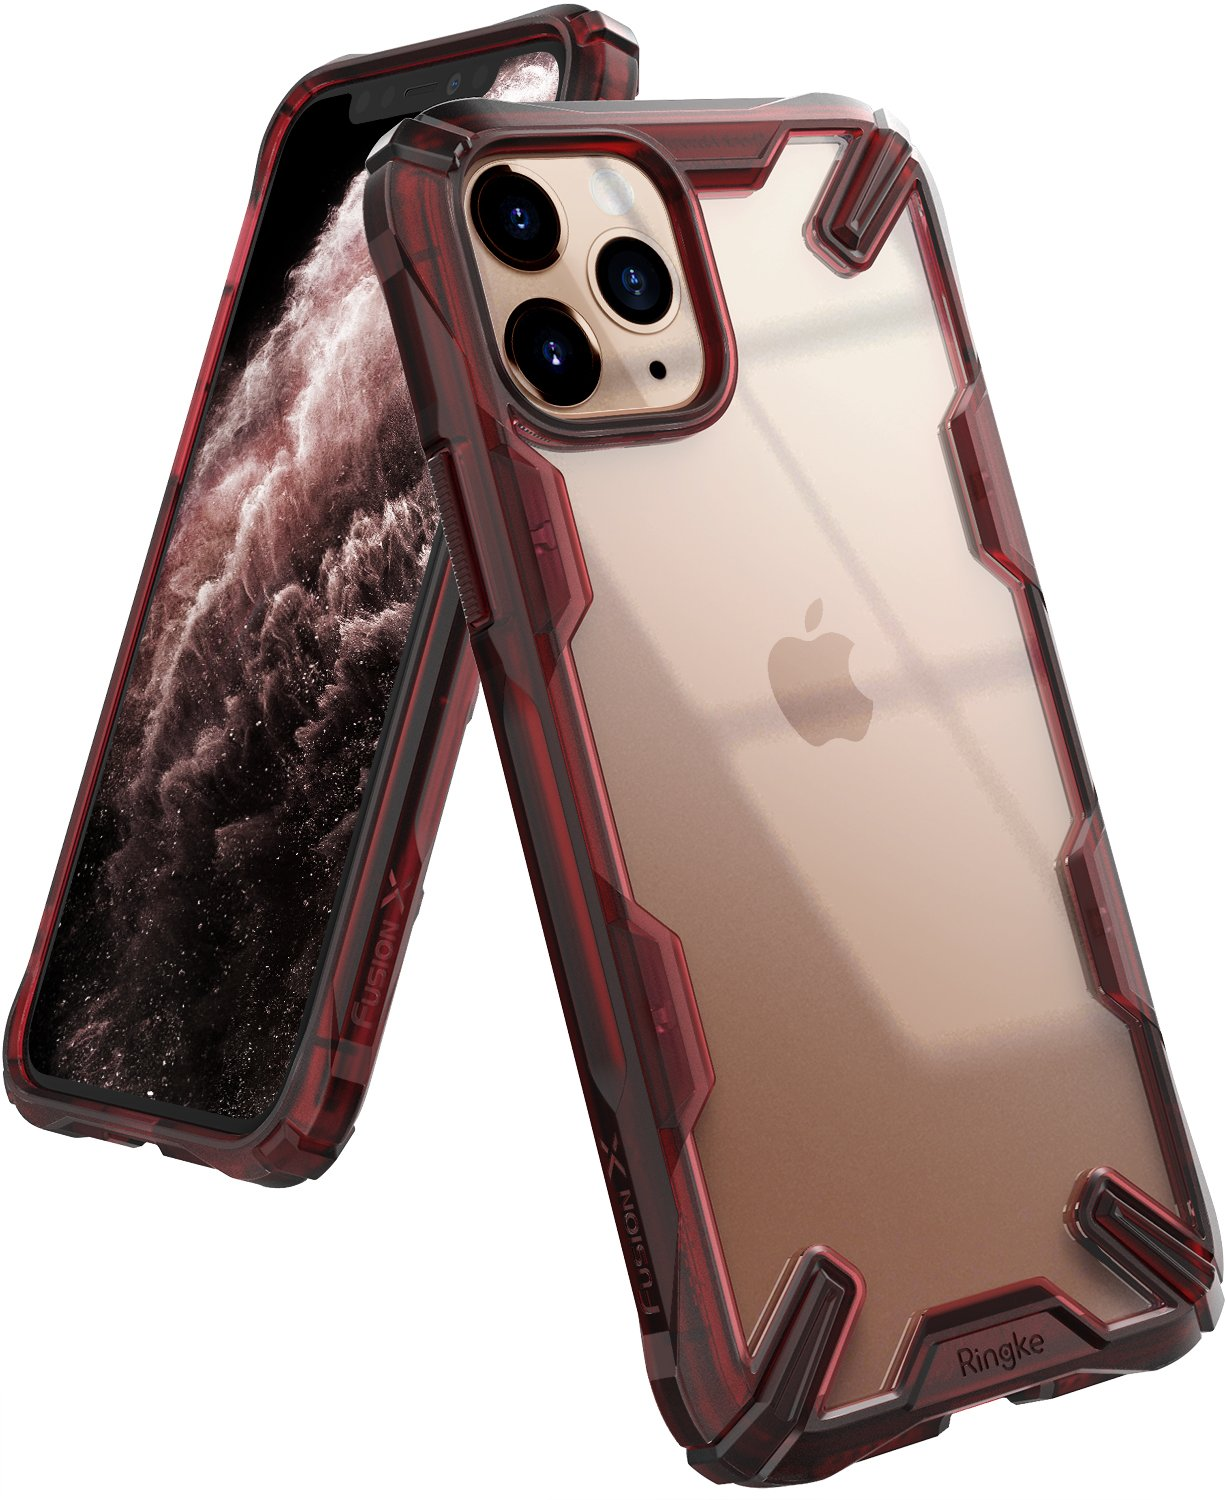 Ringke Fusion X Designed for apple iPhone 11 Pro MAX Case ruby red